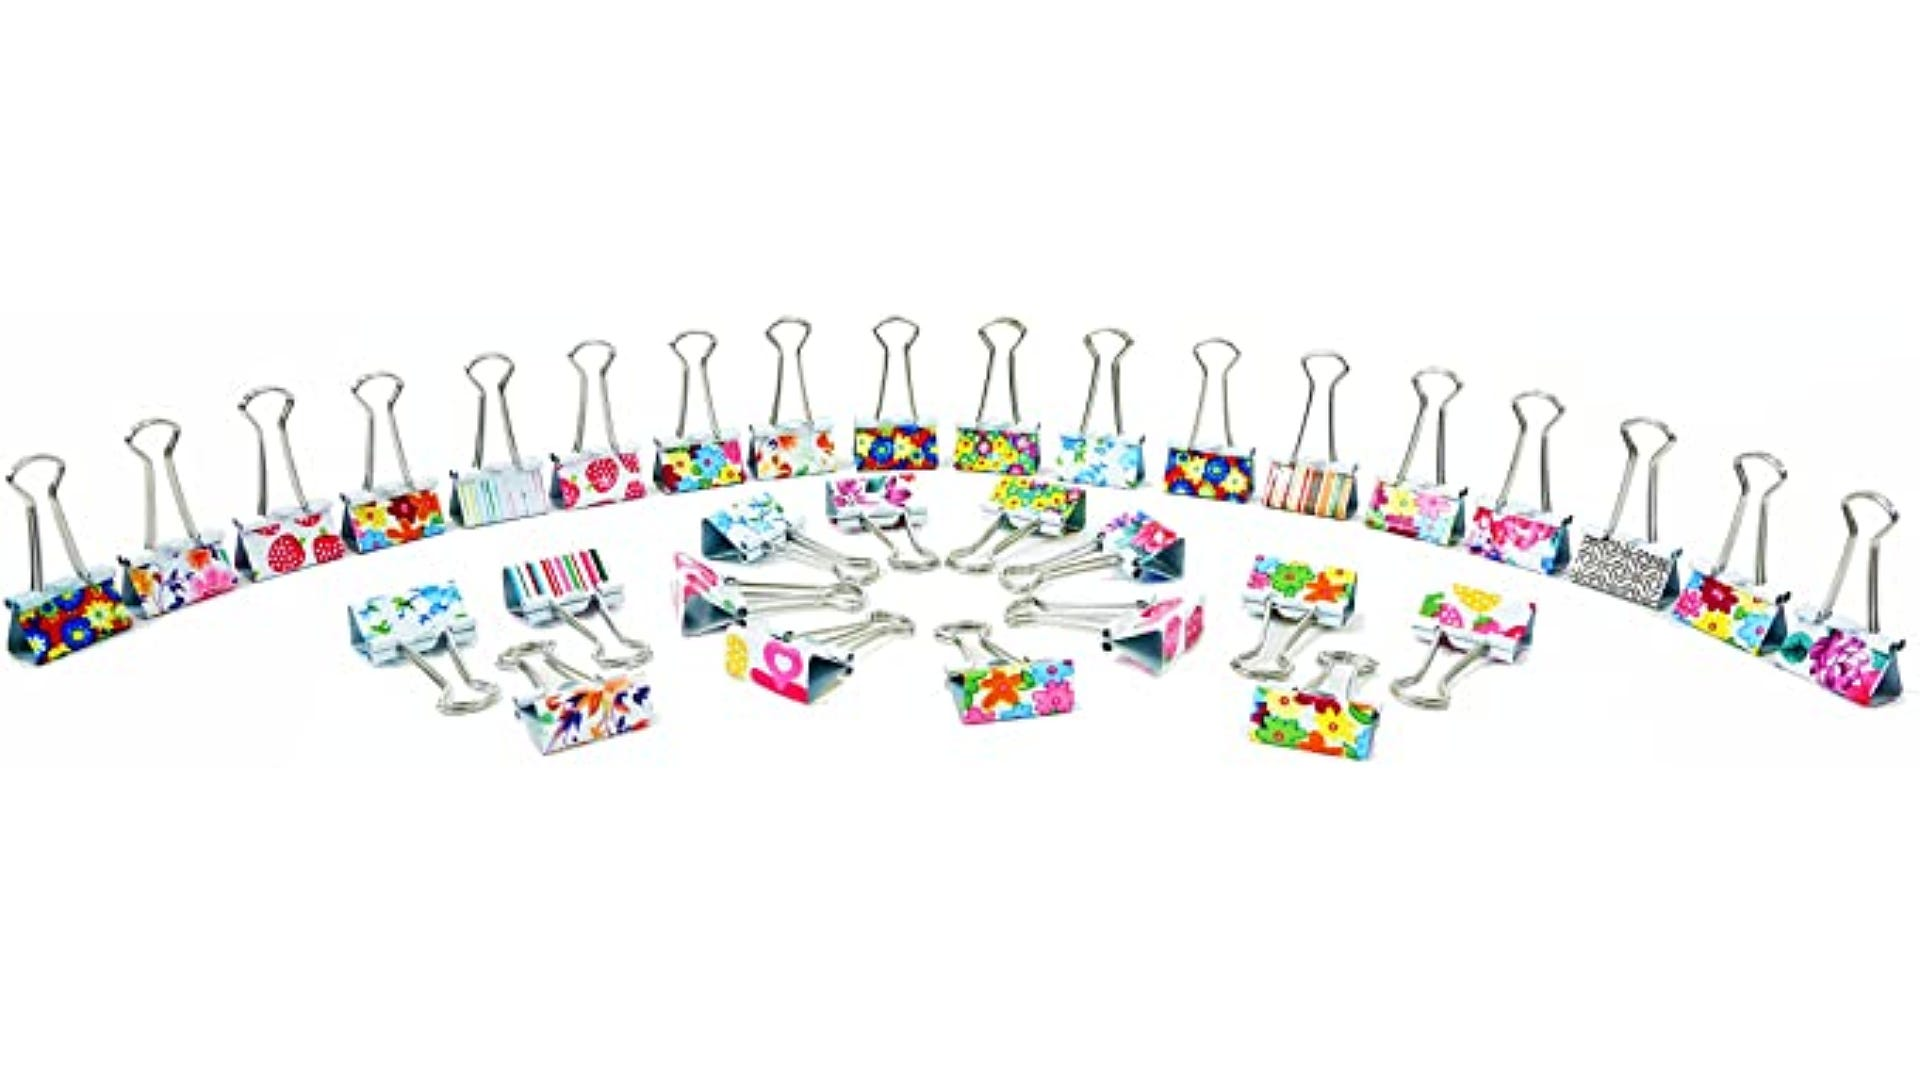 colorful printed binder clips displayed standing up in line